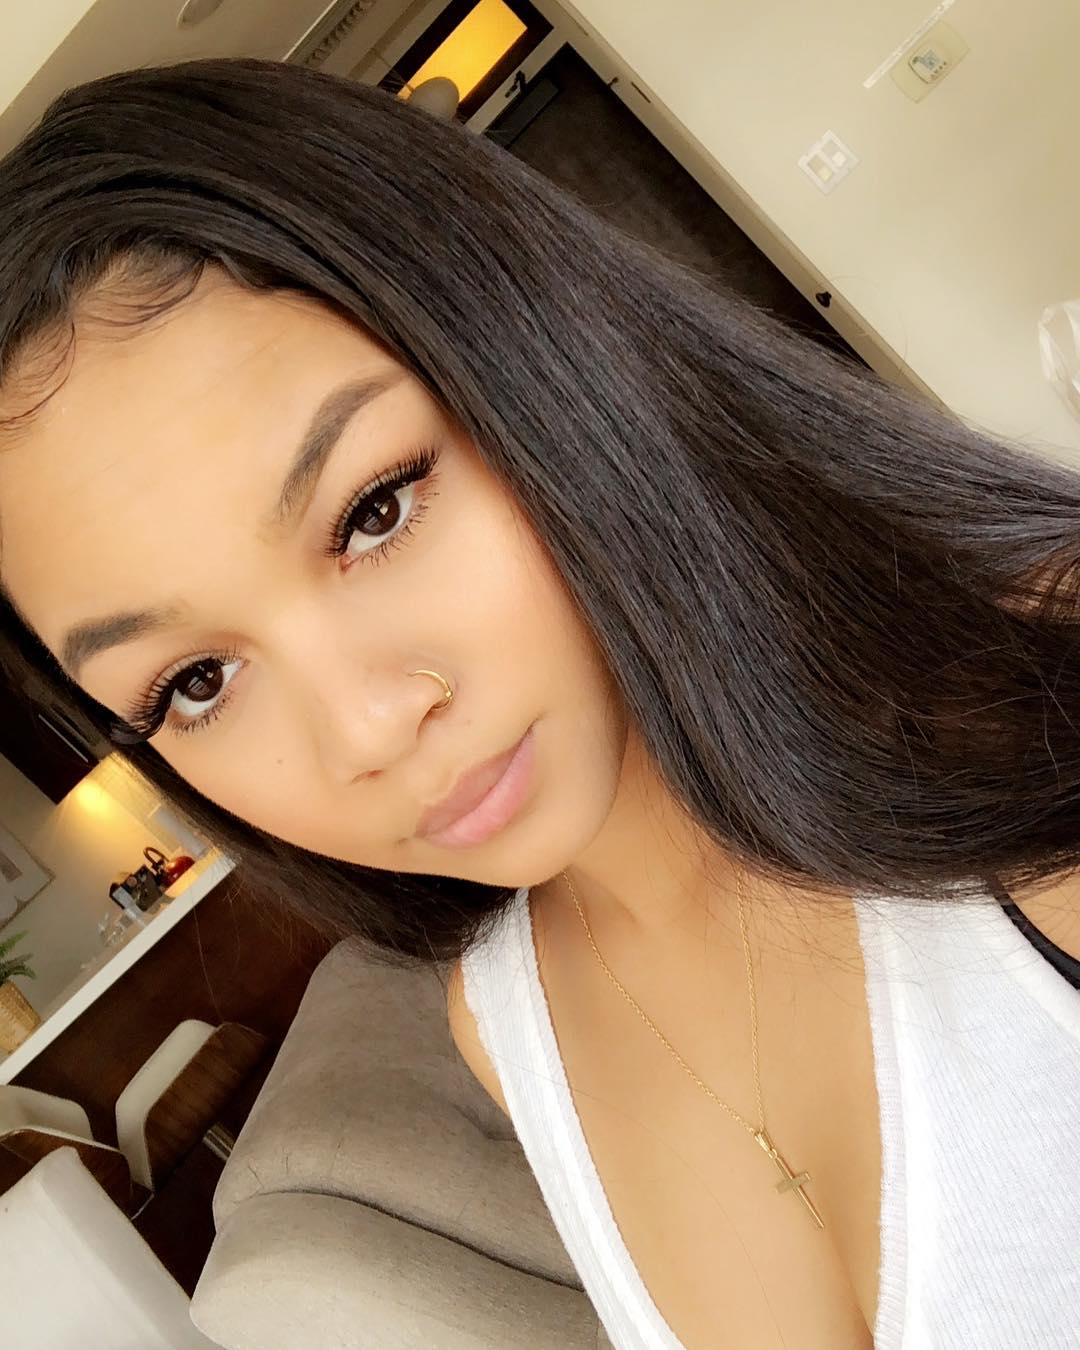 """Wolftyla, 21 - Half Korean and half African American, Wolftyla initially gained fame as a Vine comedian, and now has 1.5 million Instagram followers. Since then, the Queens, New York, native has transitioned into singing and songwriting, with her 2017 song """"Impressed"""" racking up more than 1.5 million plays on Soundcloud. Wolftyla's sound has been compared to R&B songstresses like Kehlani and Jhene Aiko, and she has worked with R&B and hip-hop artists like Tory Lanez, Party Next Door, and Elle Varner. In addition to singing, Wolftyla is the founder of the #WolfMovement, a social movement that promotes positivity, love and self-confidence. — C.N.Image Courtesy of Wolftyla"""